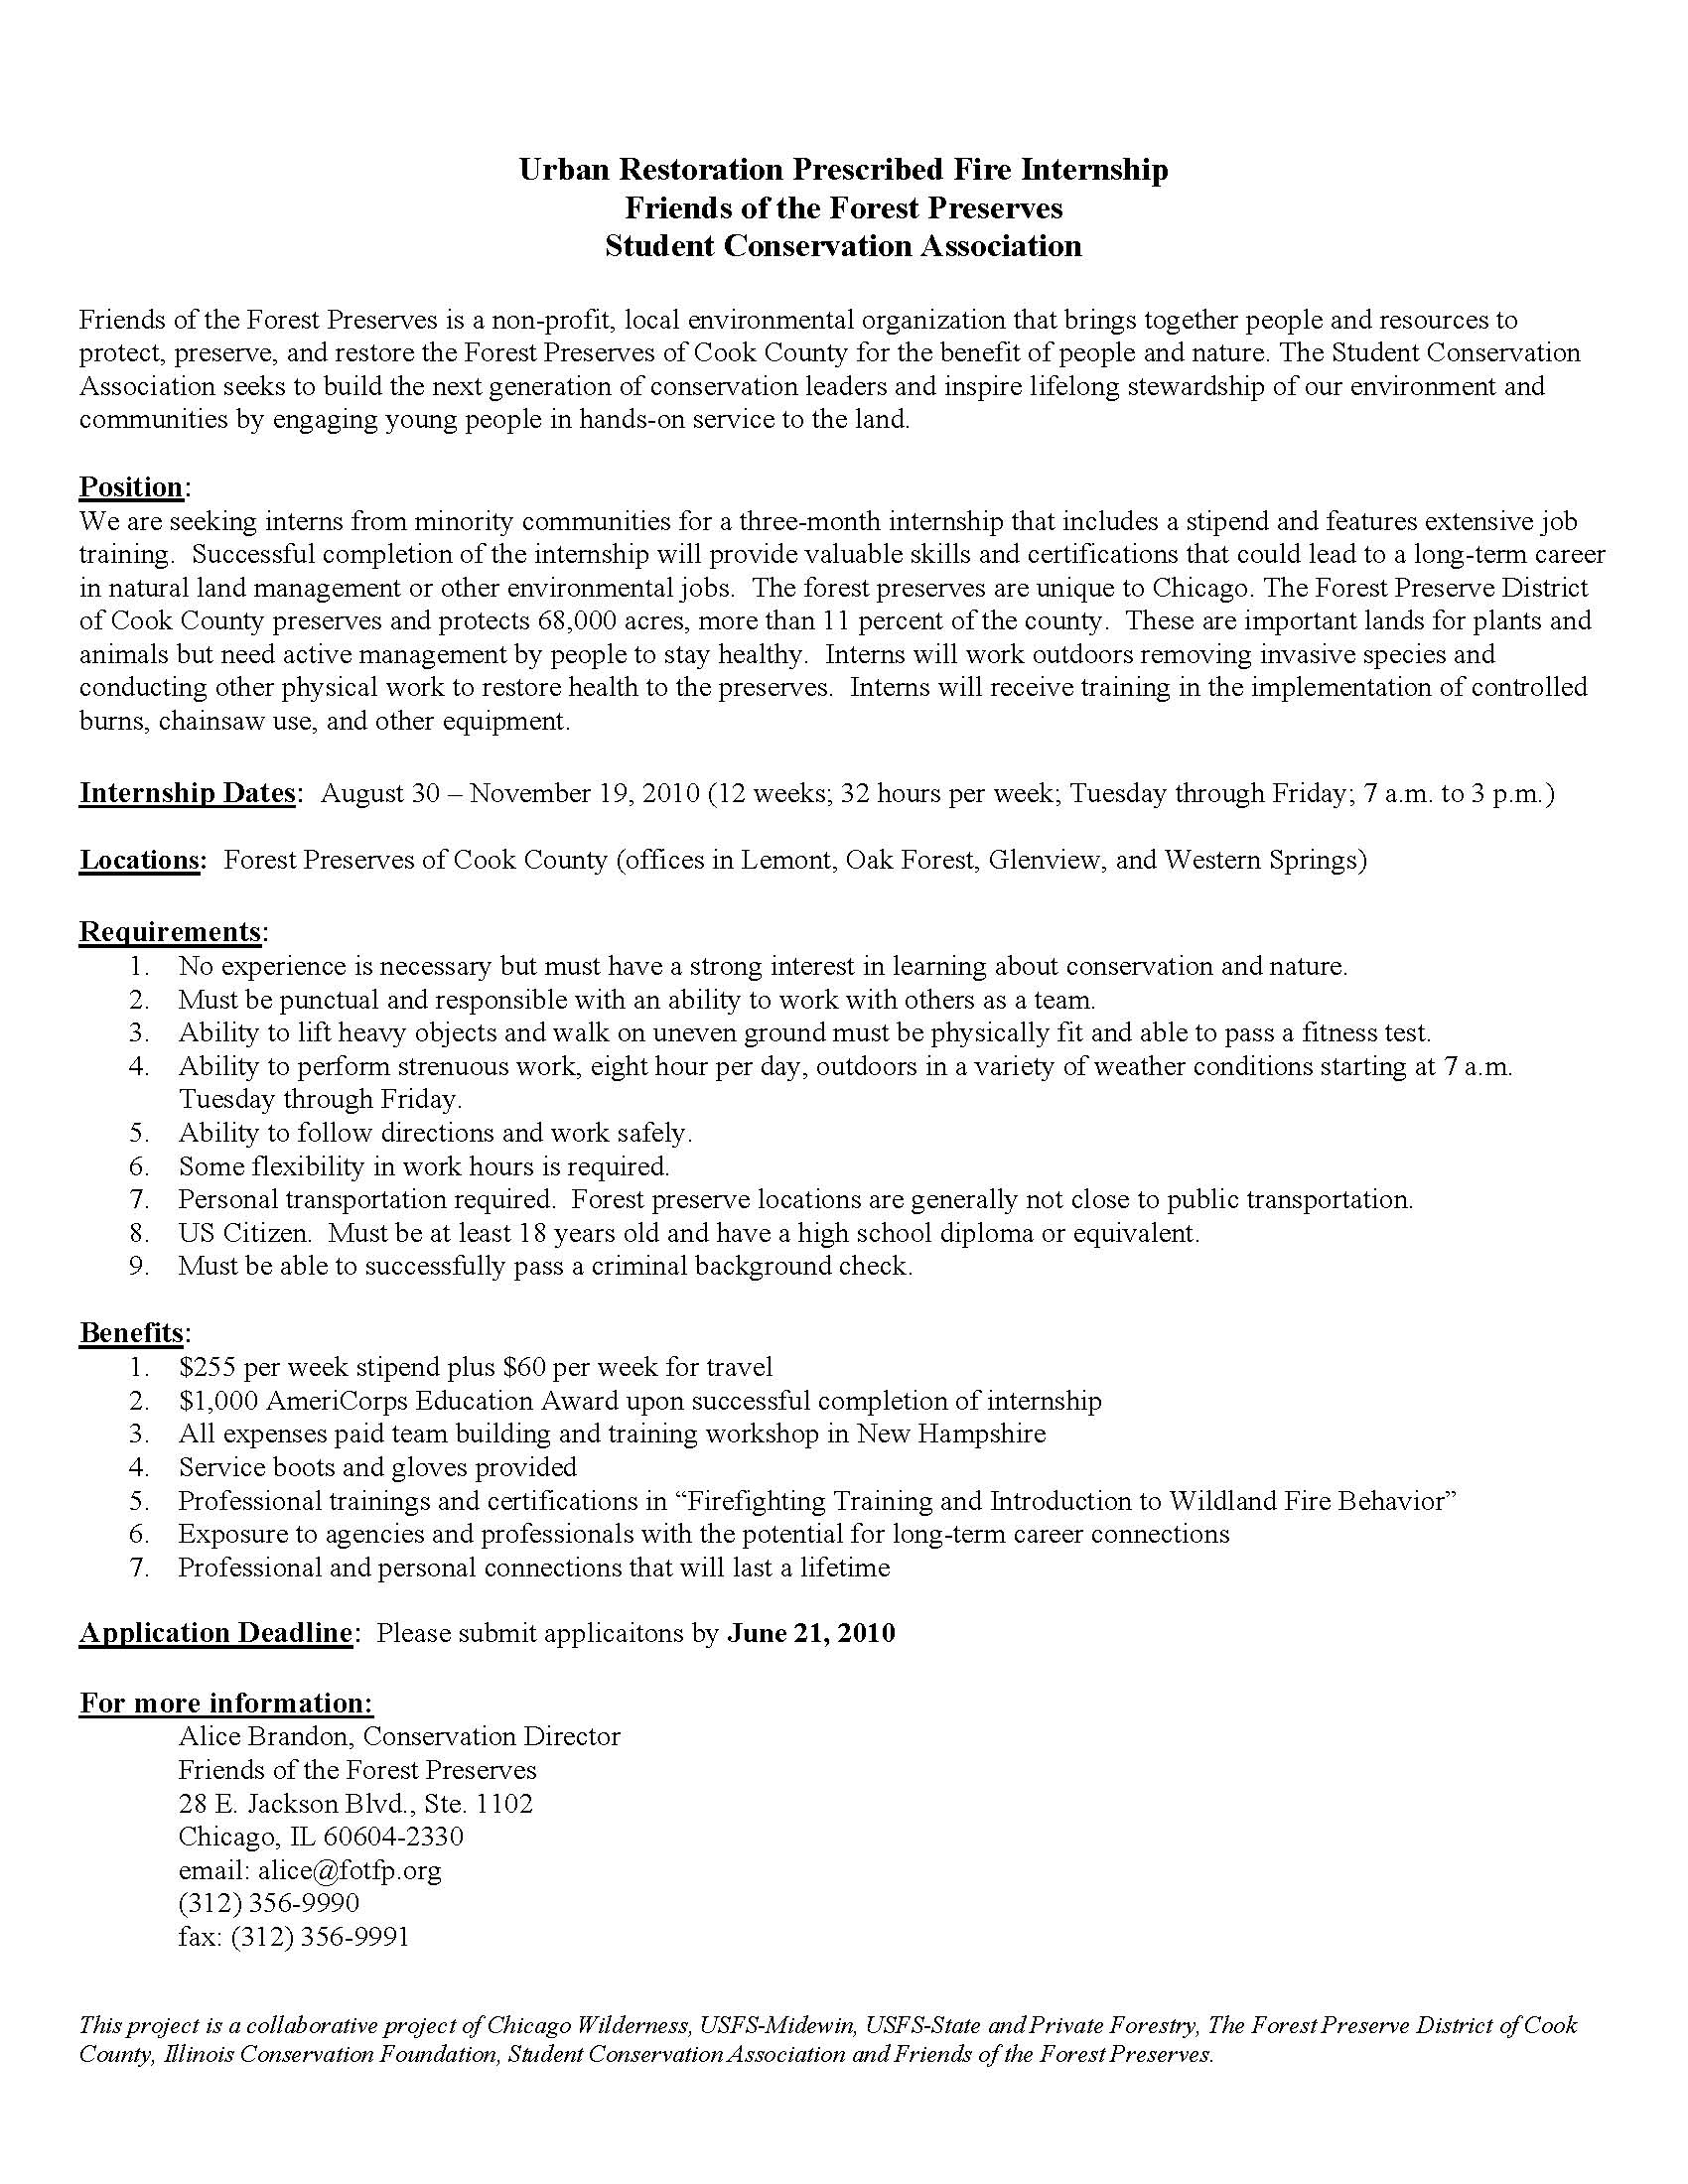 ... FOTFP Intern Job Description 2010_Page_1 ...